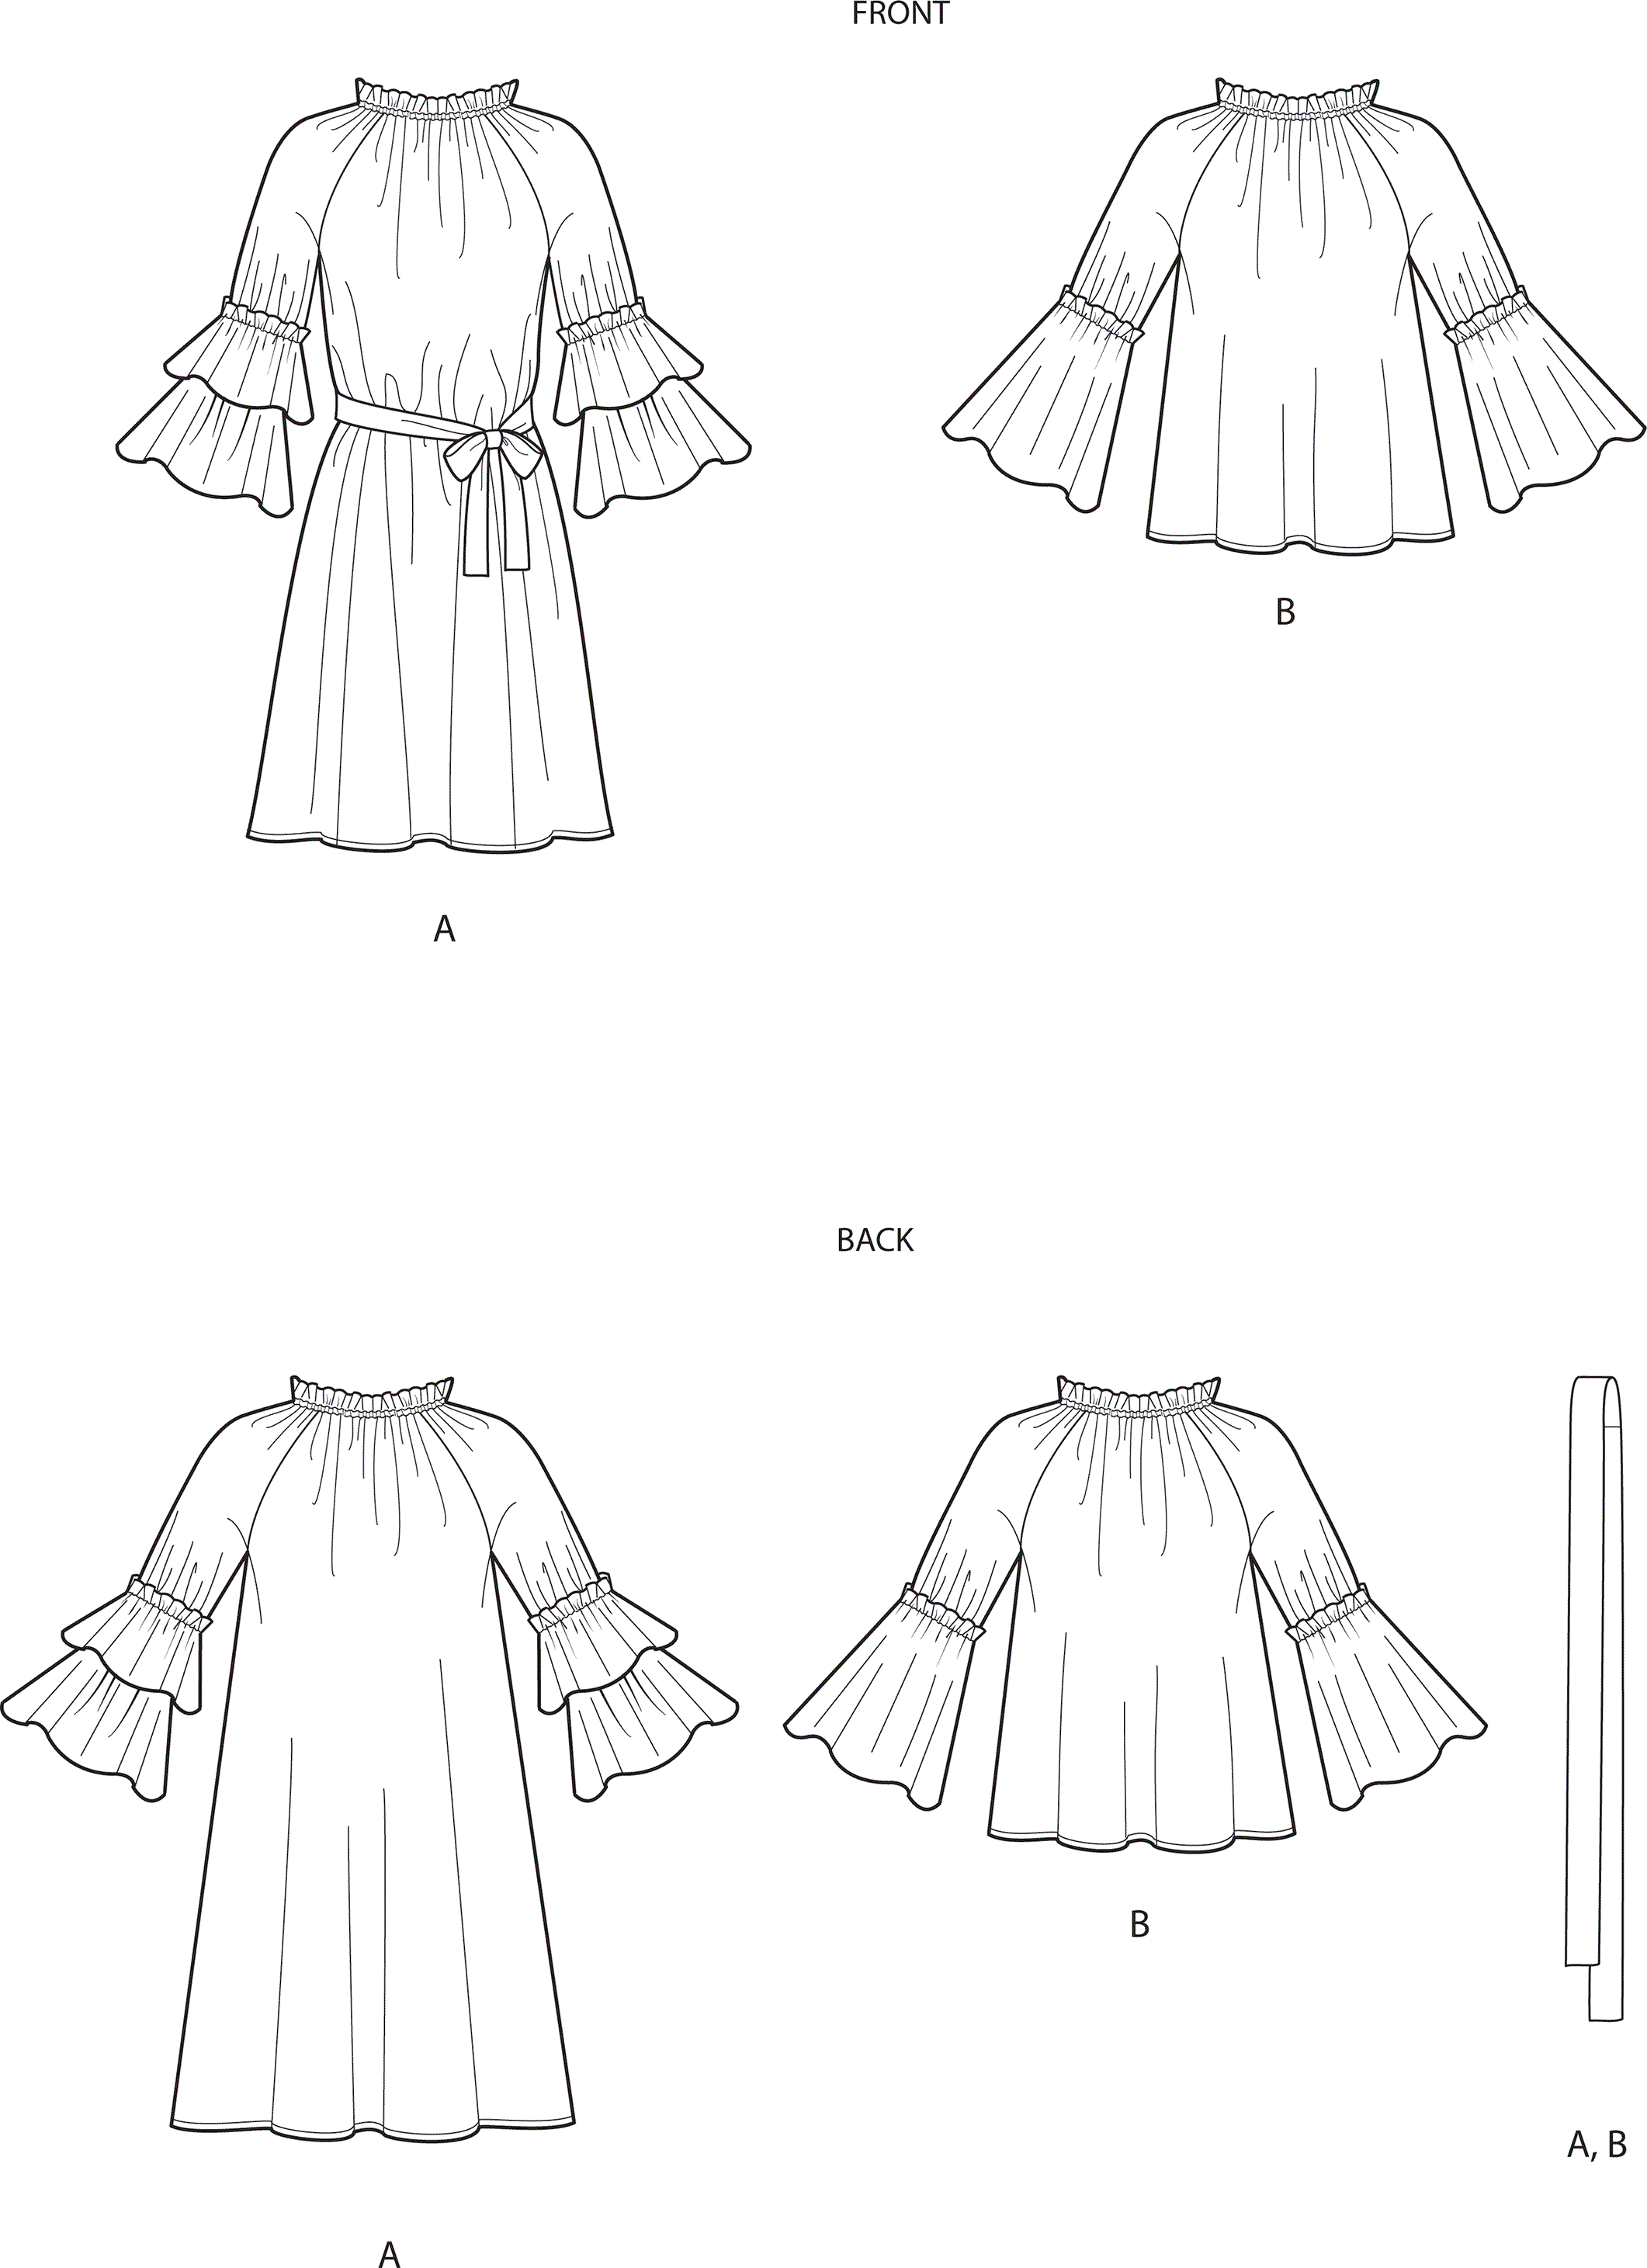 Simplicity Sewing Pattern S9012 Misses Dresses or Top and Belt 9012 Line Art From Patternsandplains.com